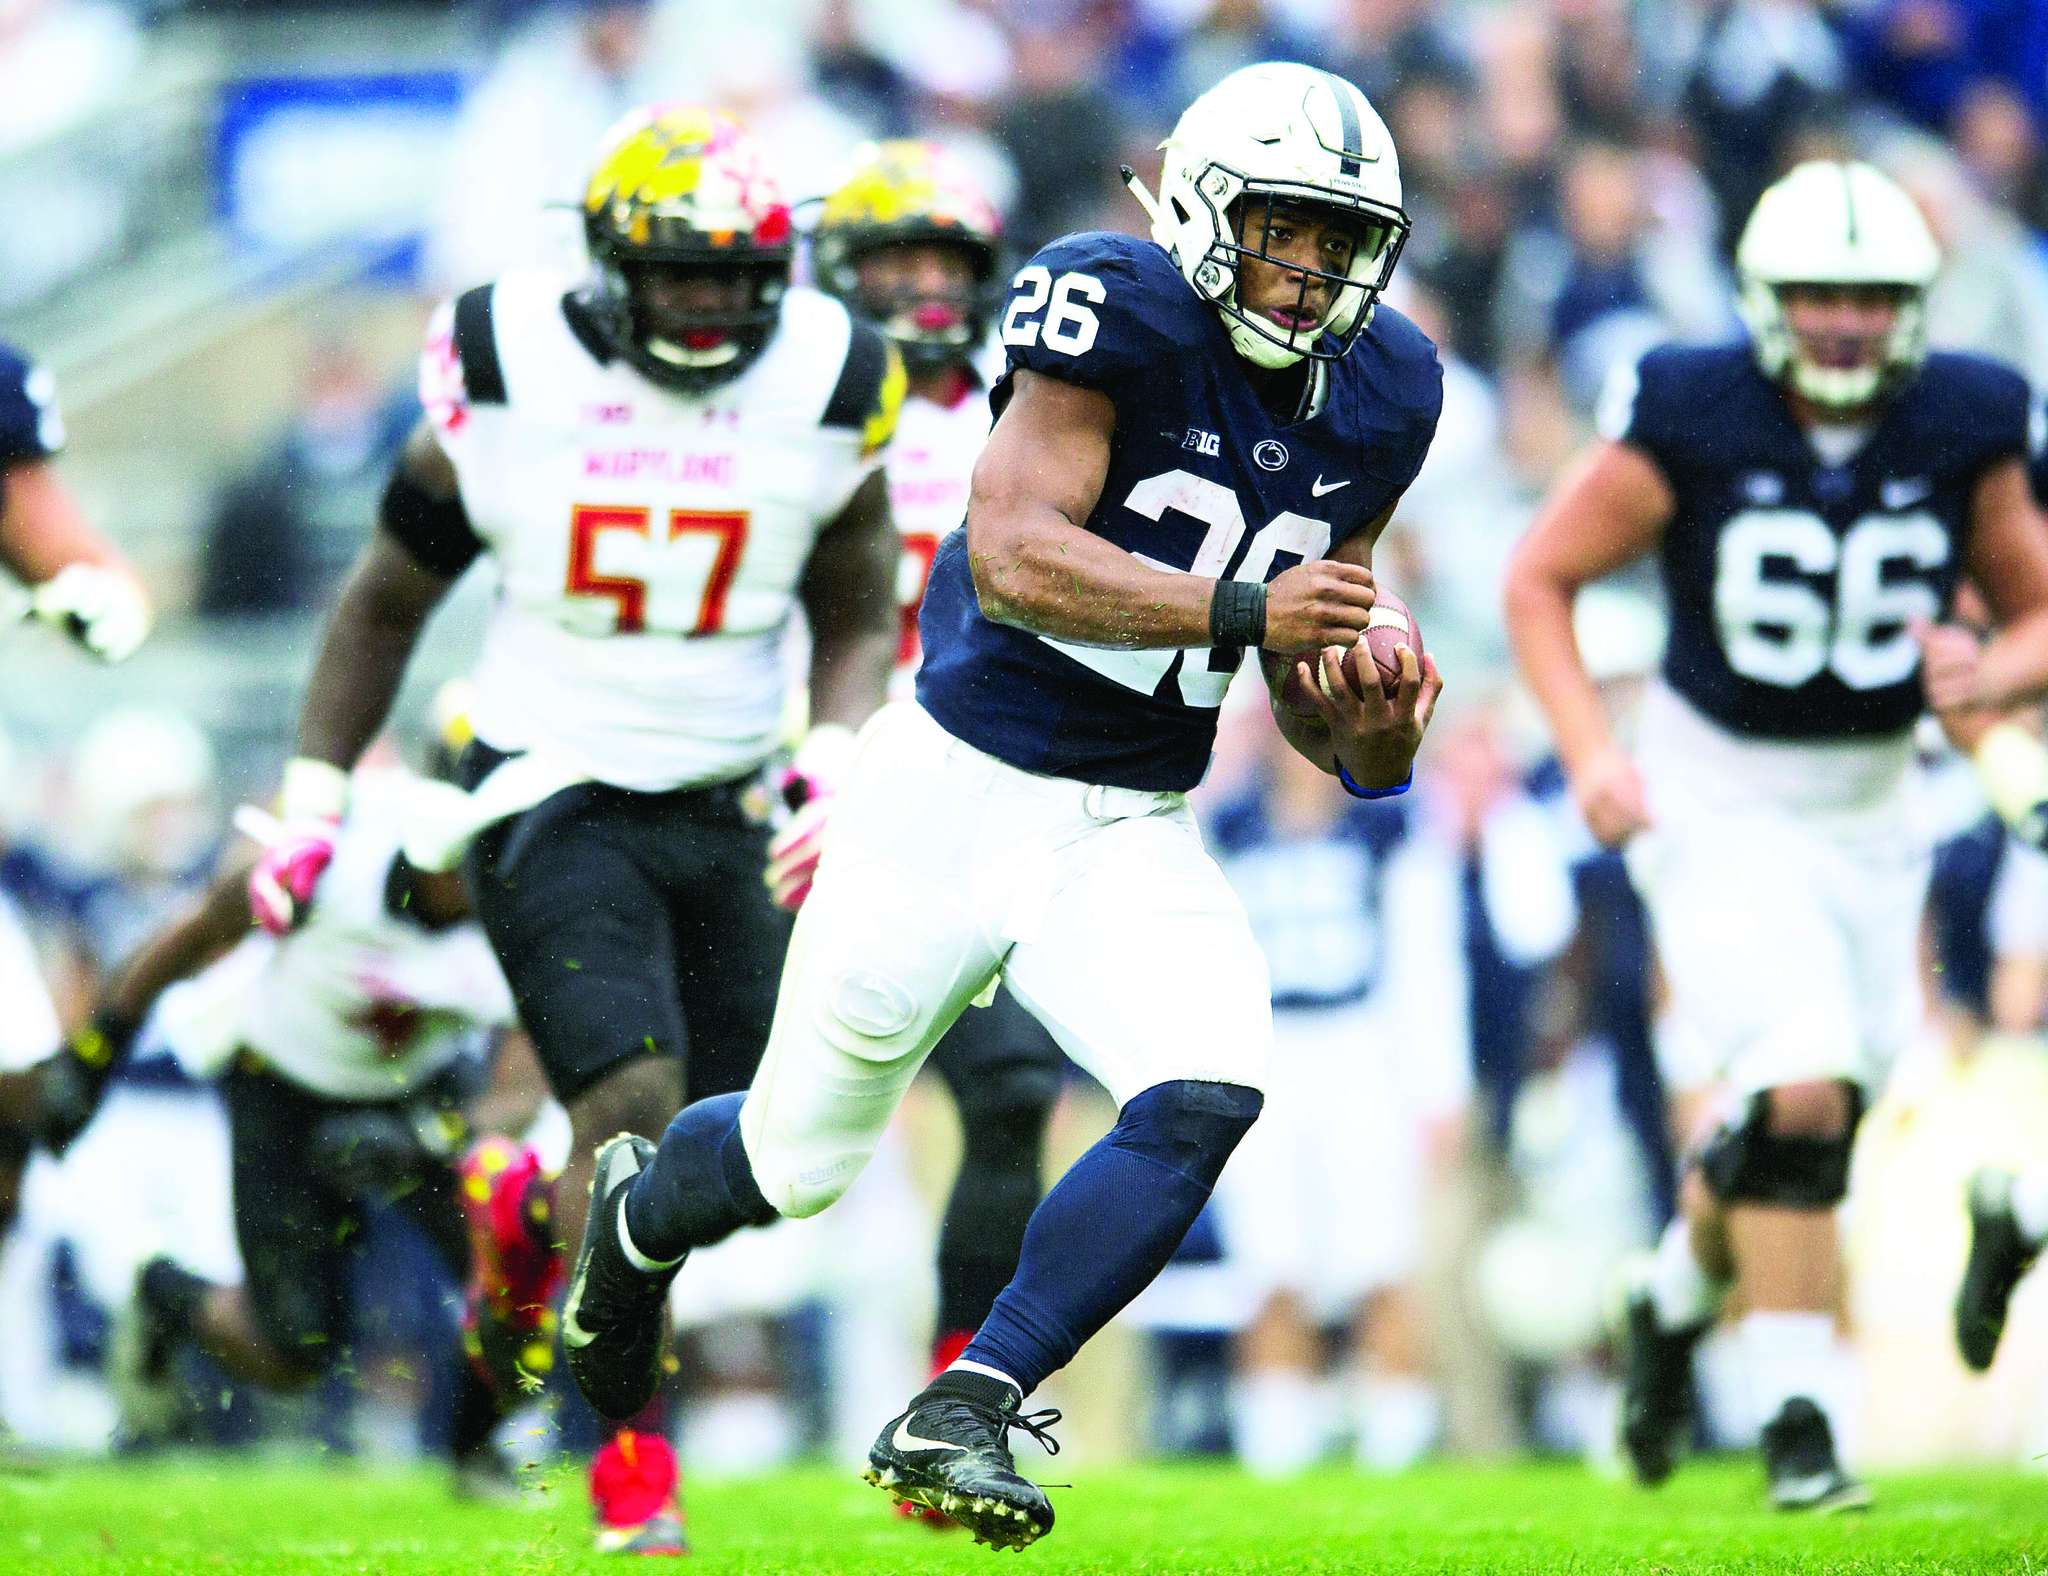 Penn State´s Saquon Barkley looks for running room against Maryland. TNS